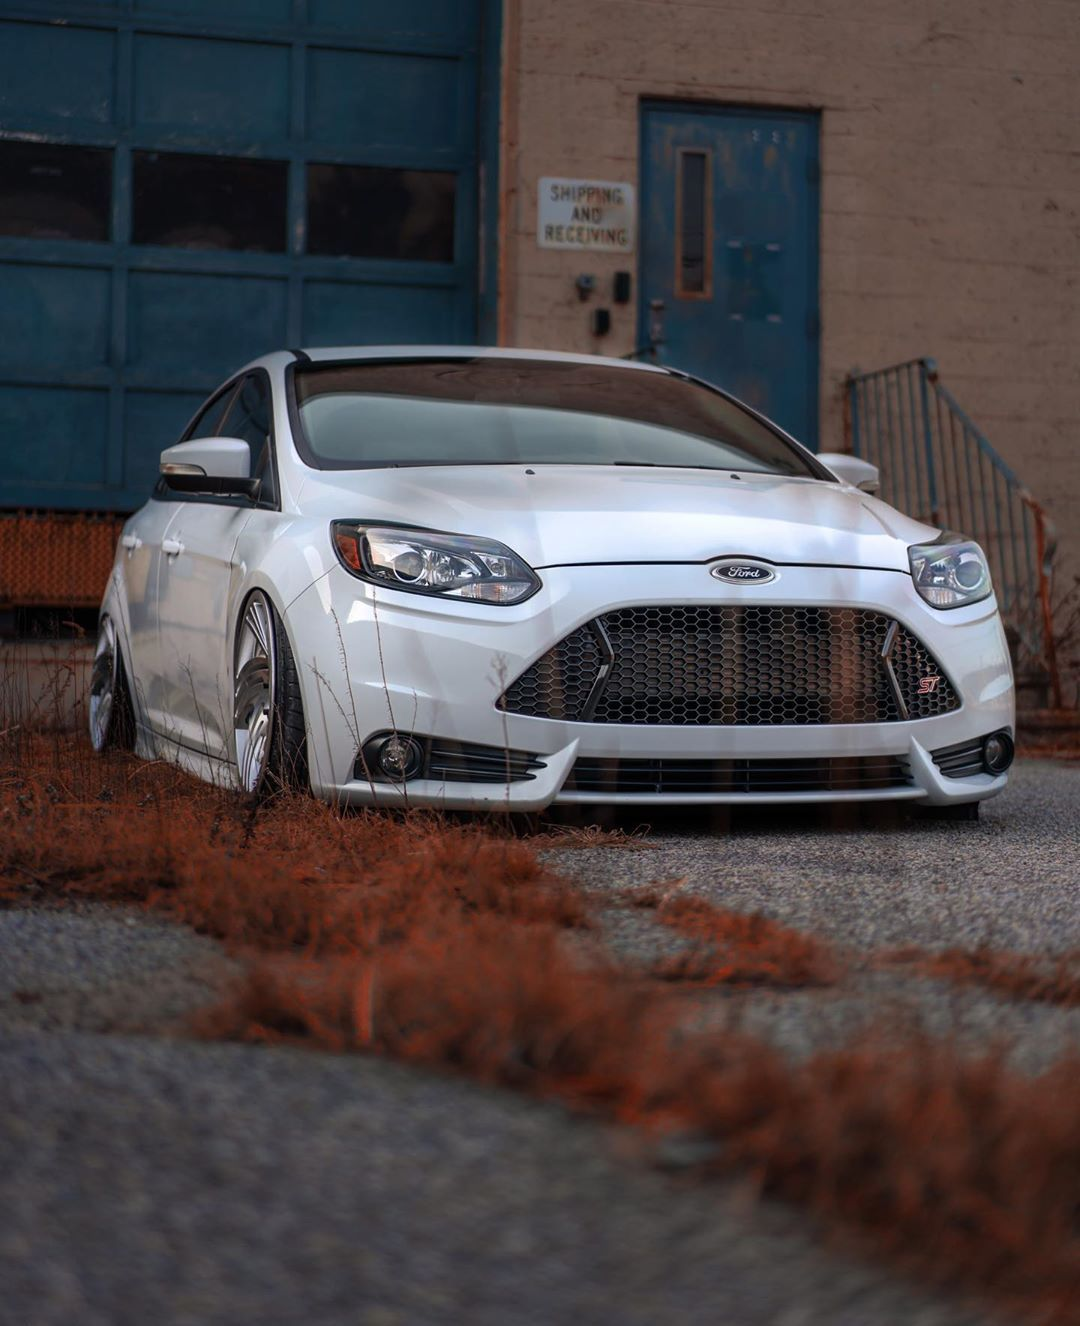 Pin by Stefan Unruh on Cars in 2020 Ford focus st, Ford